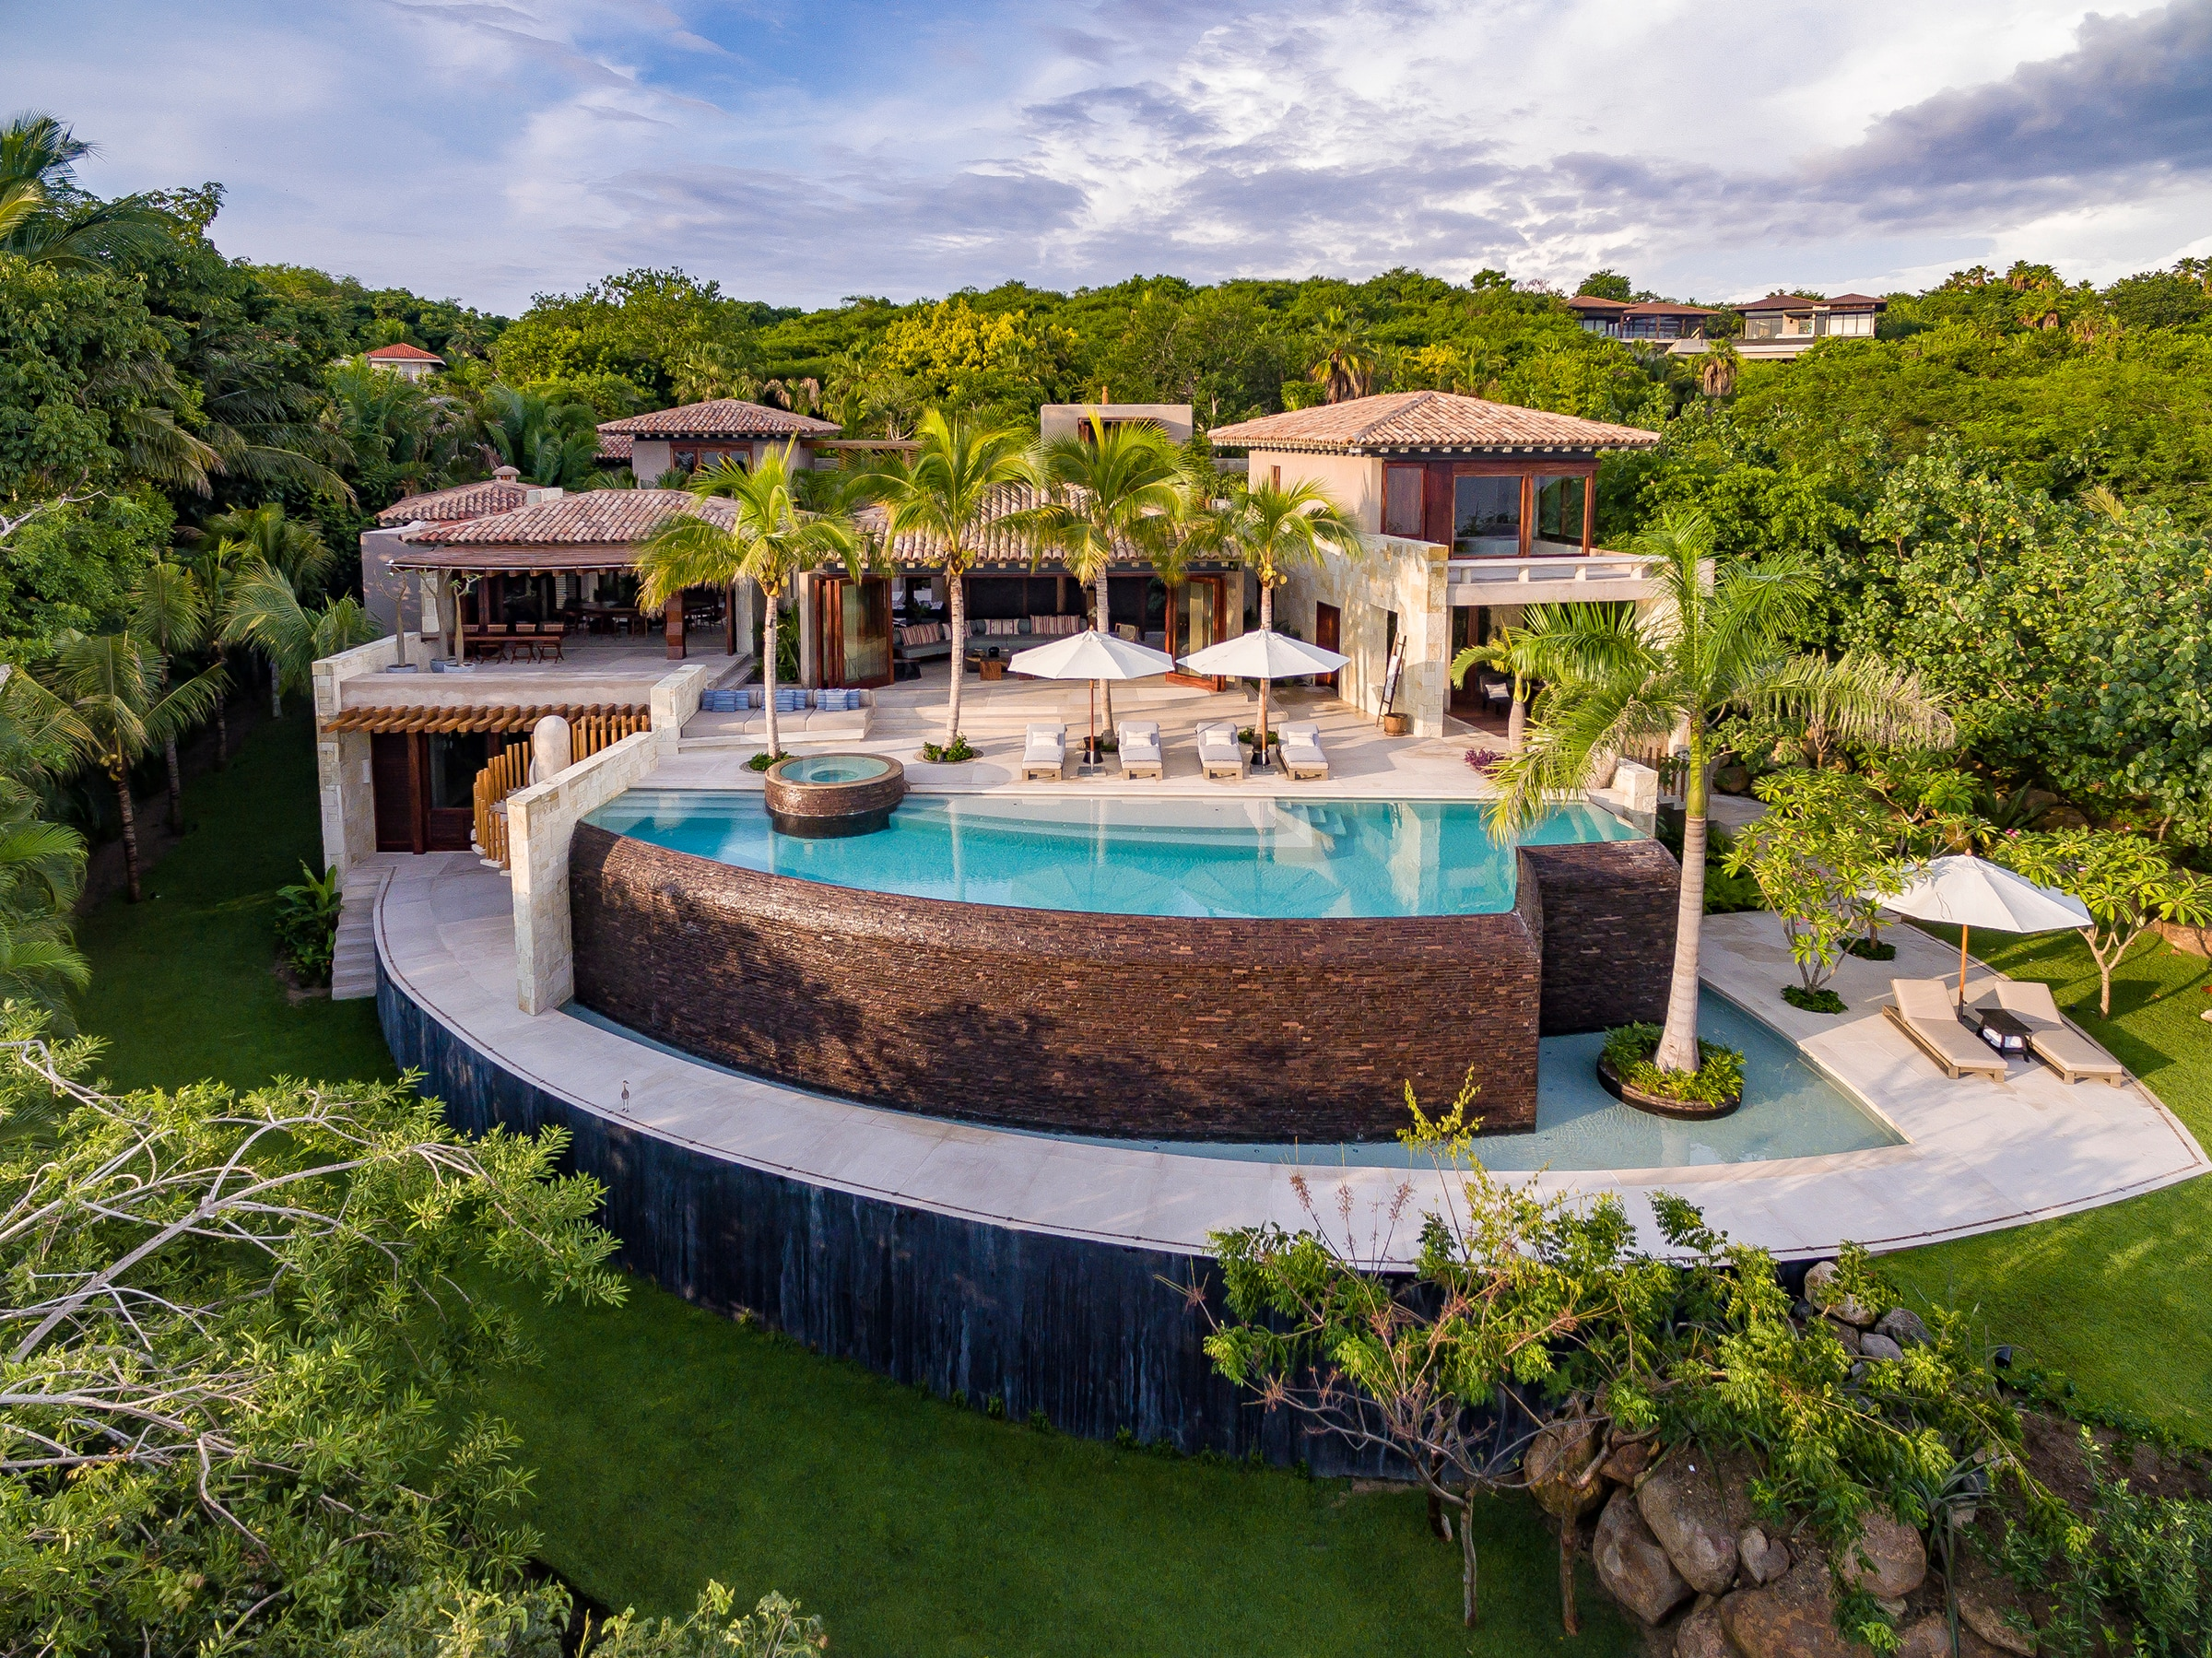 Property Image 1 - Chic Villa with Beach Access in Punta Mita